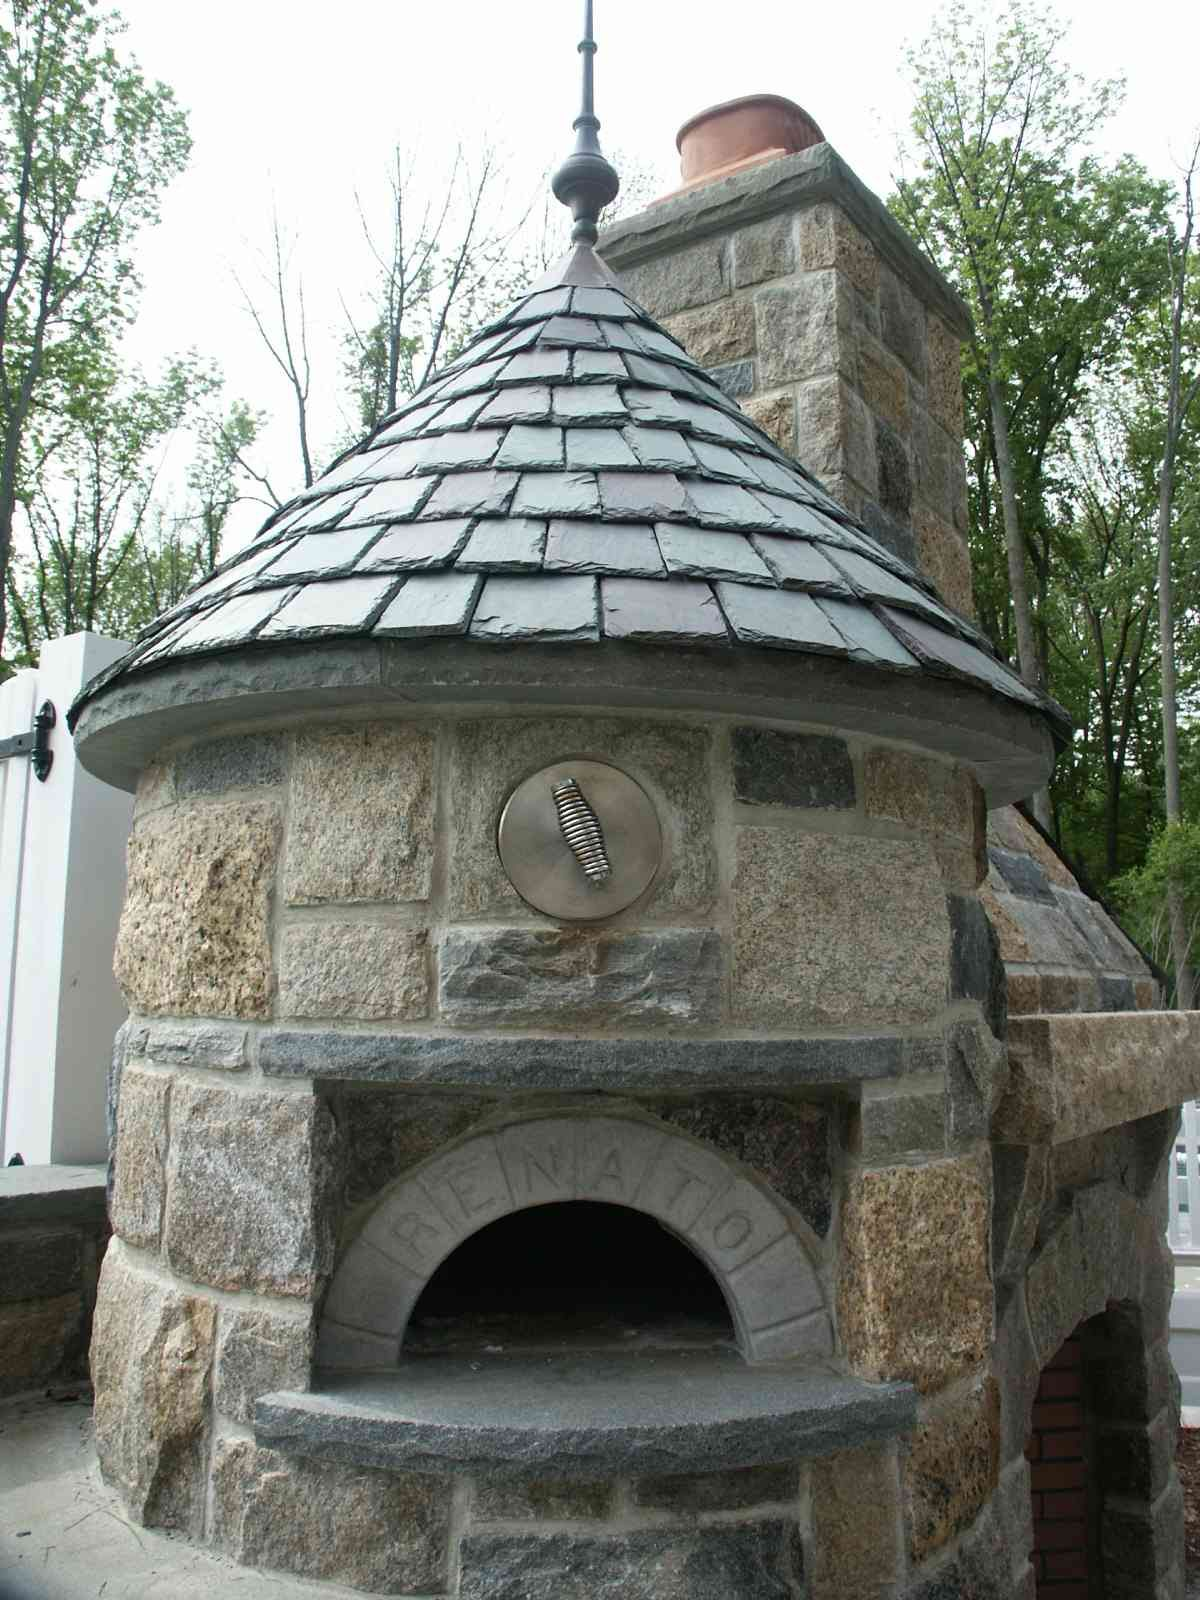 Wood Gas Infrared Brick Ovens Options For Indoors Or